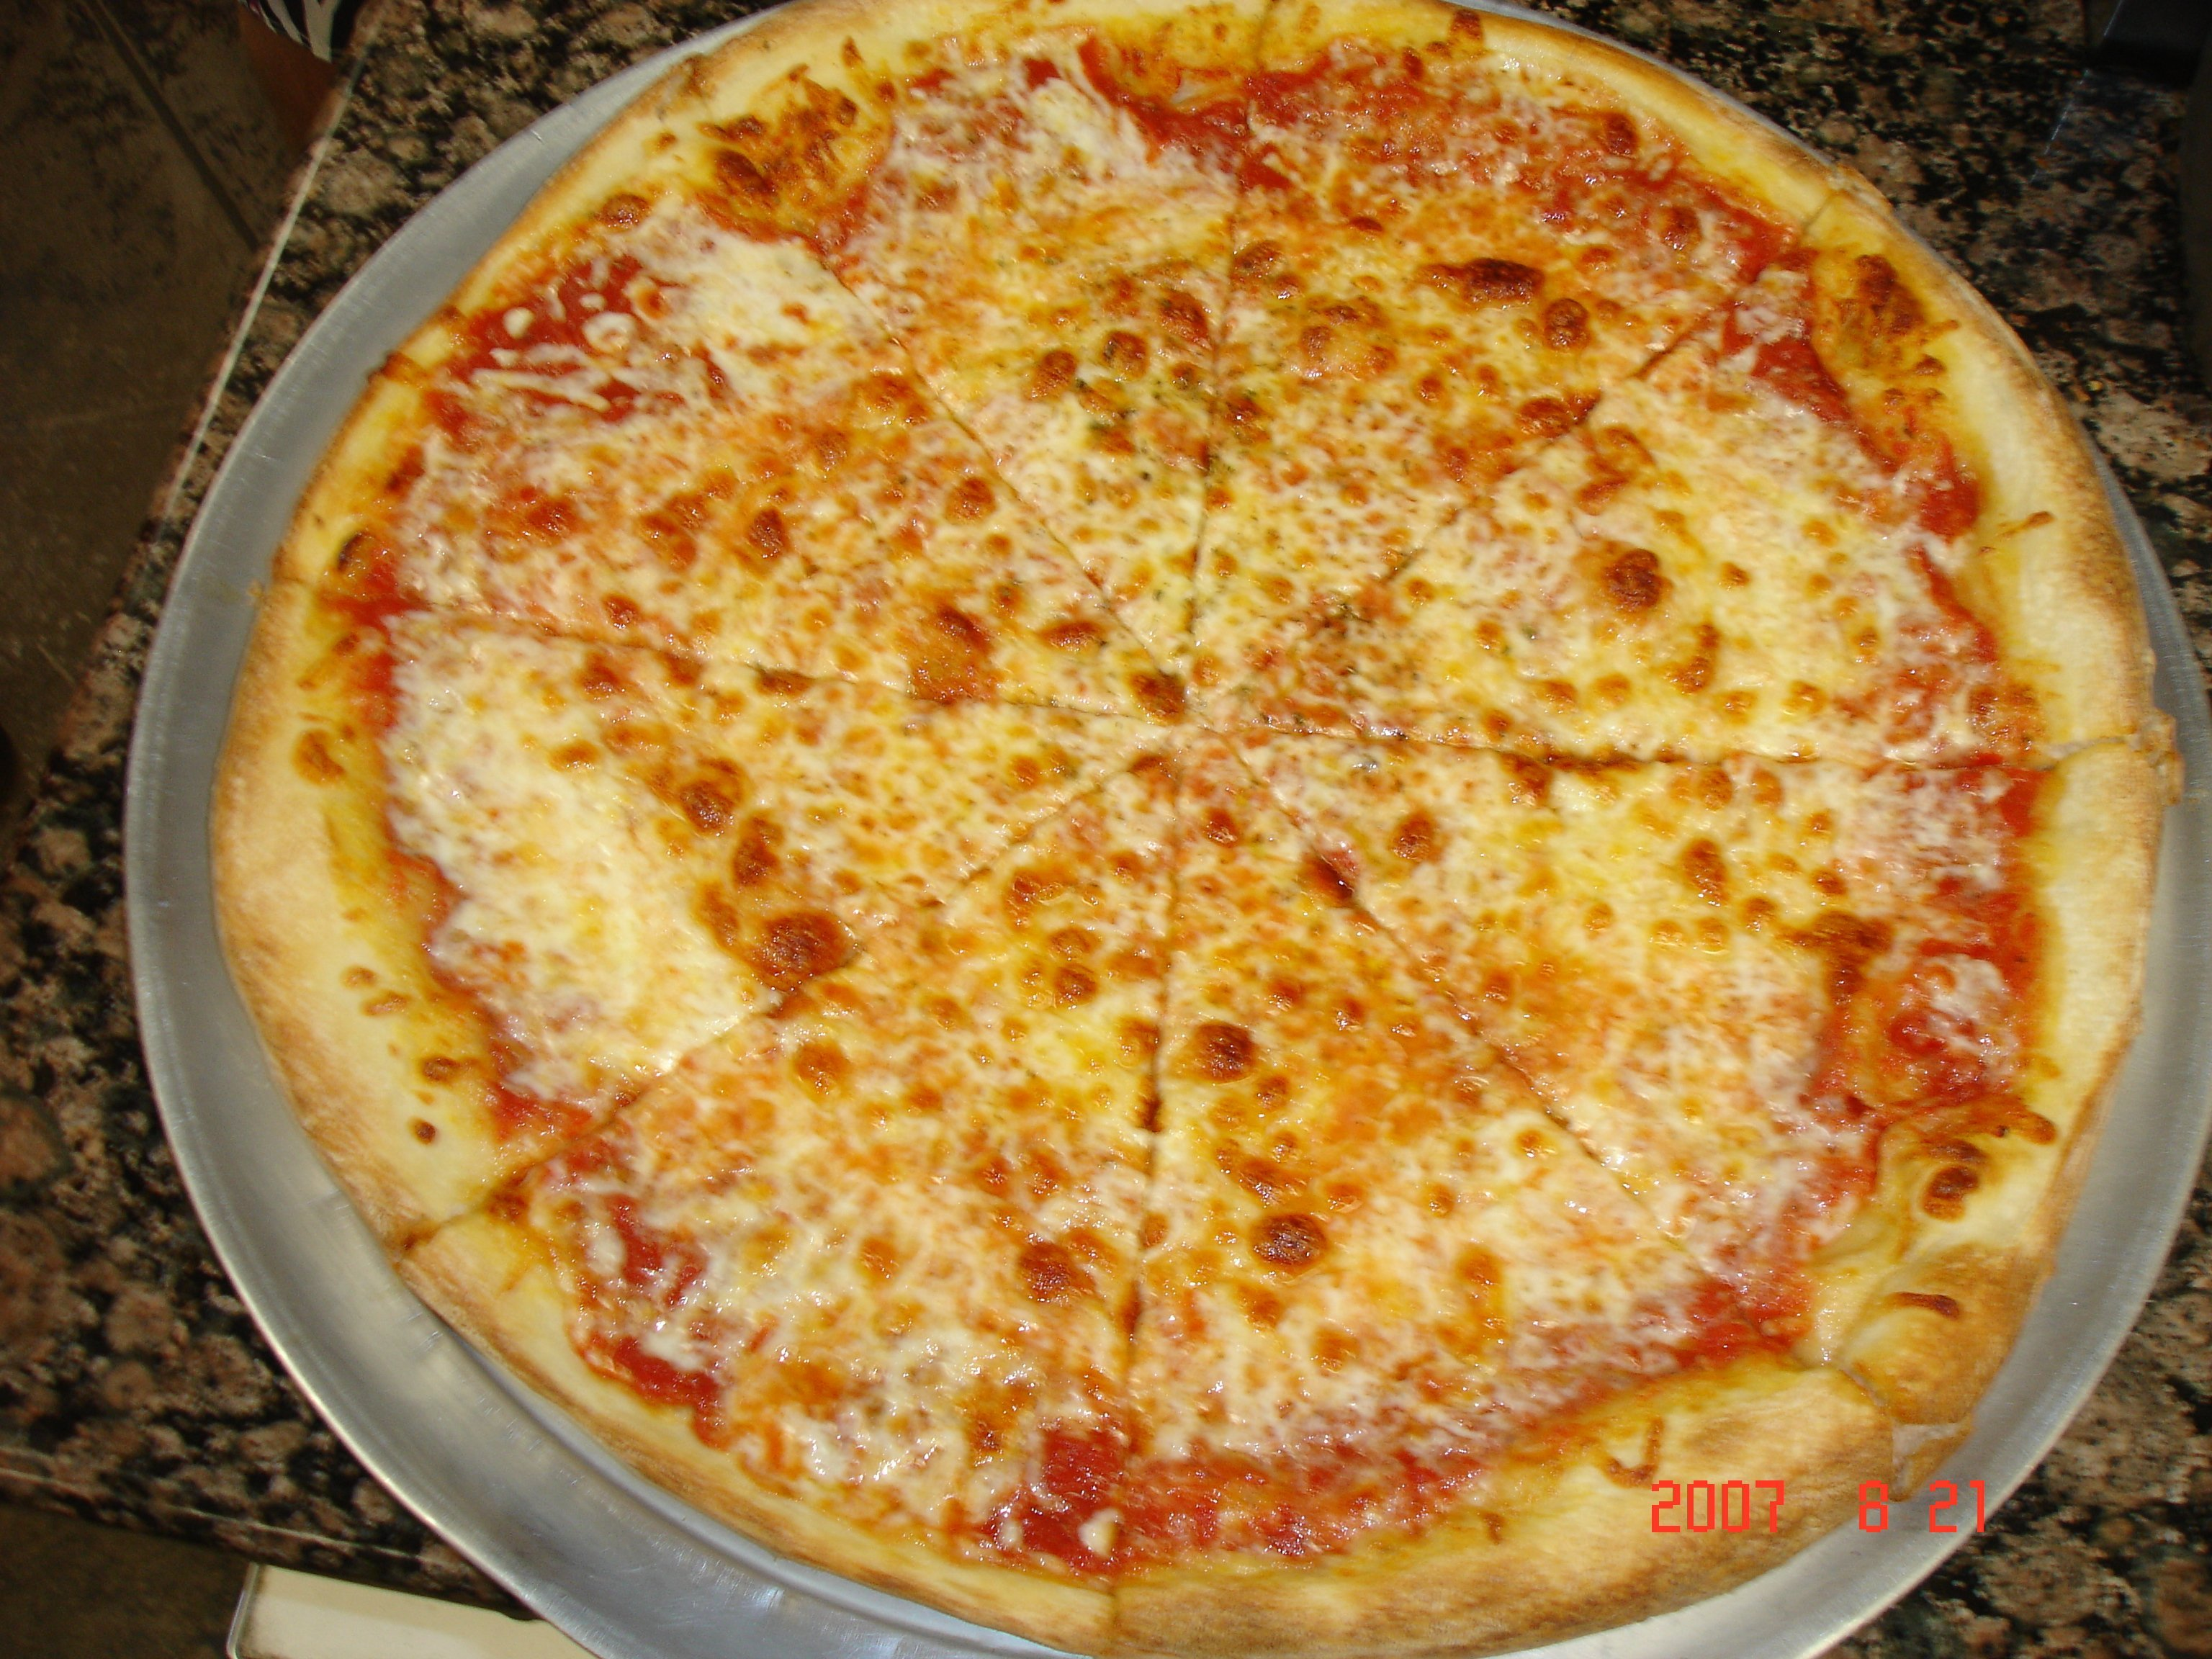 Authentic New York style pizza and sandwich available in Kihei, HI